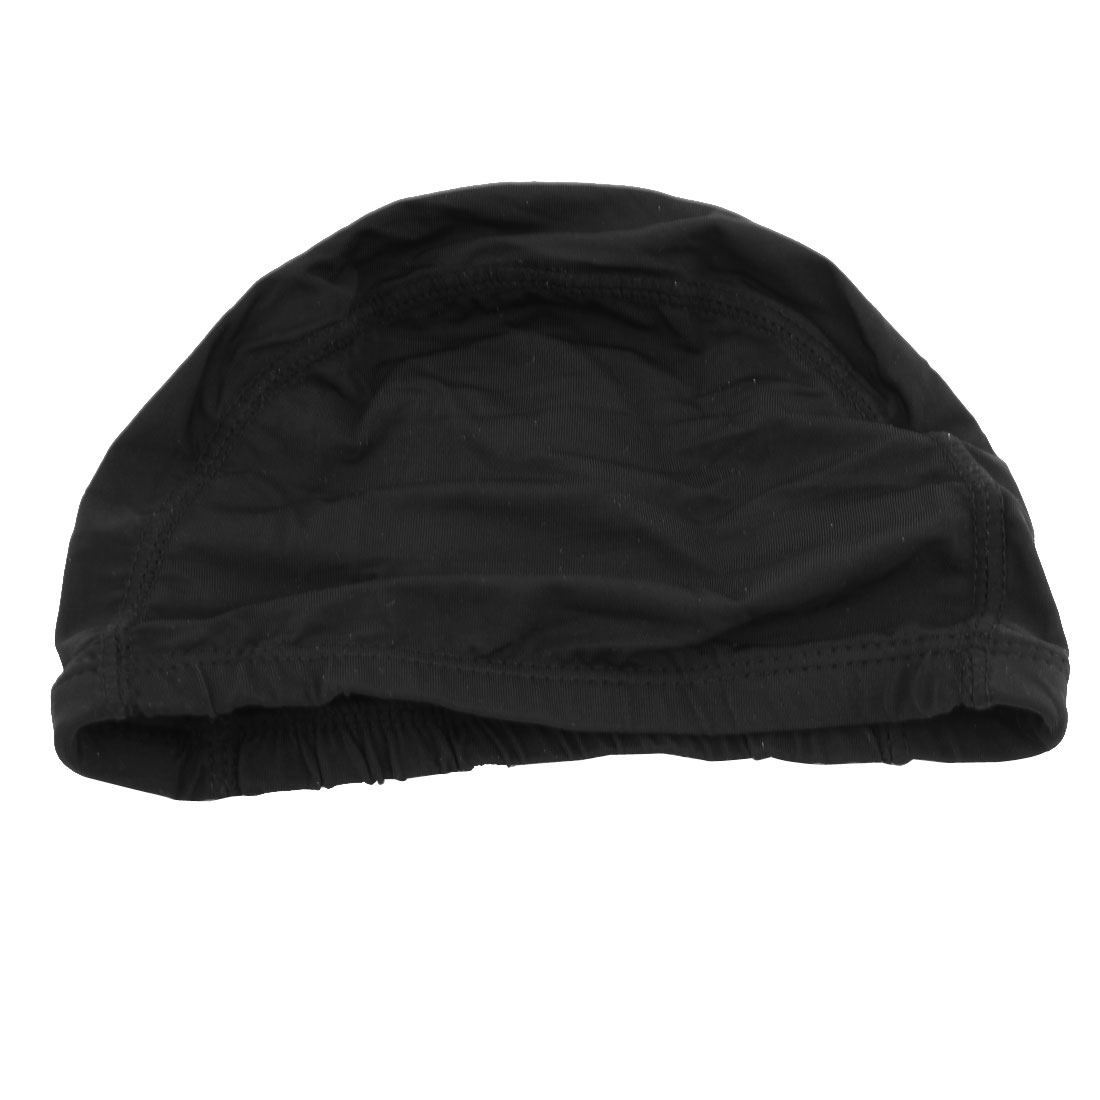 Adults Polyester Elastic Swim Hat Swimming Cap Black 7.9 Inch Long